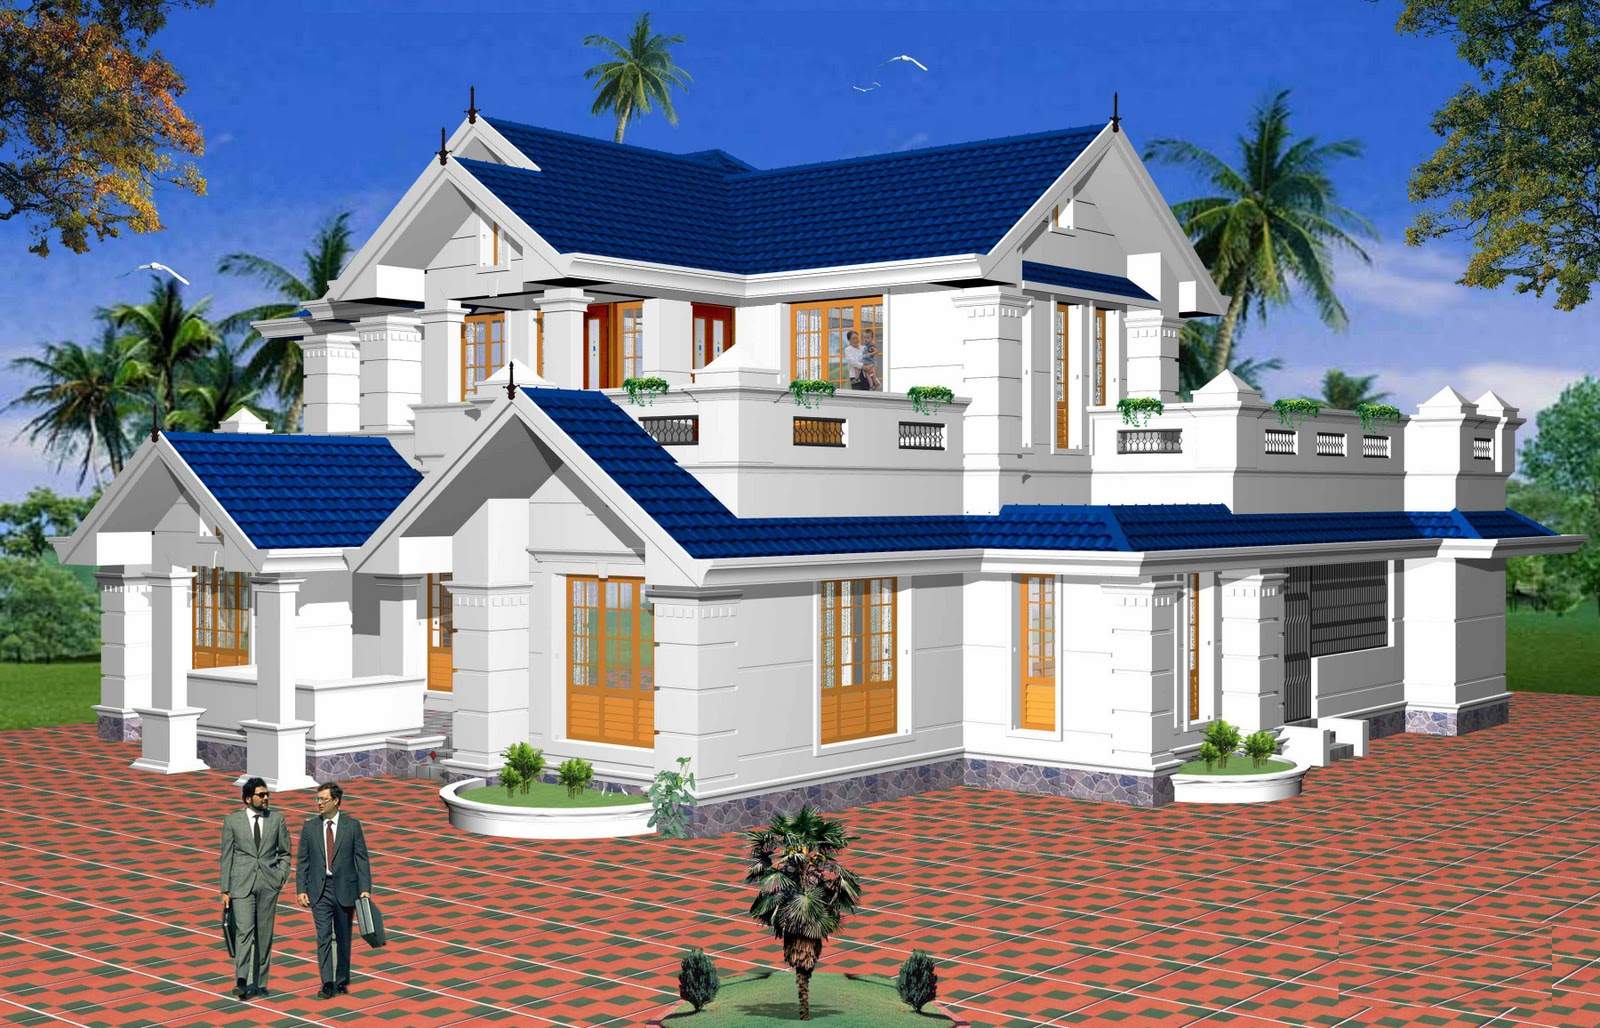 Great Modern Architectural Design House Plans 1600 x 1028 · 451 kB · jpeg